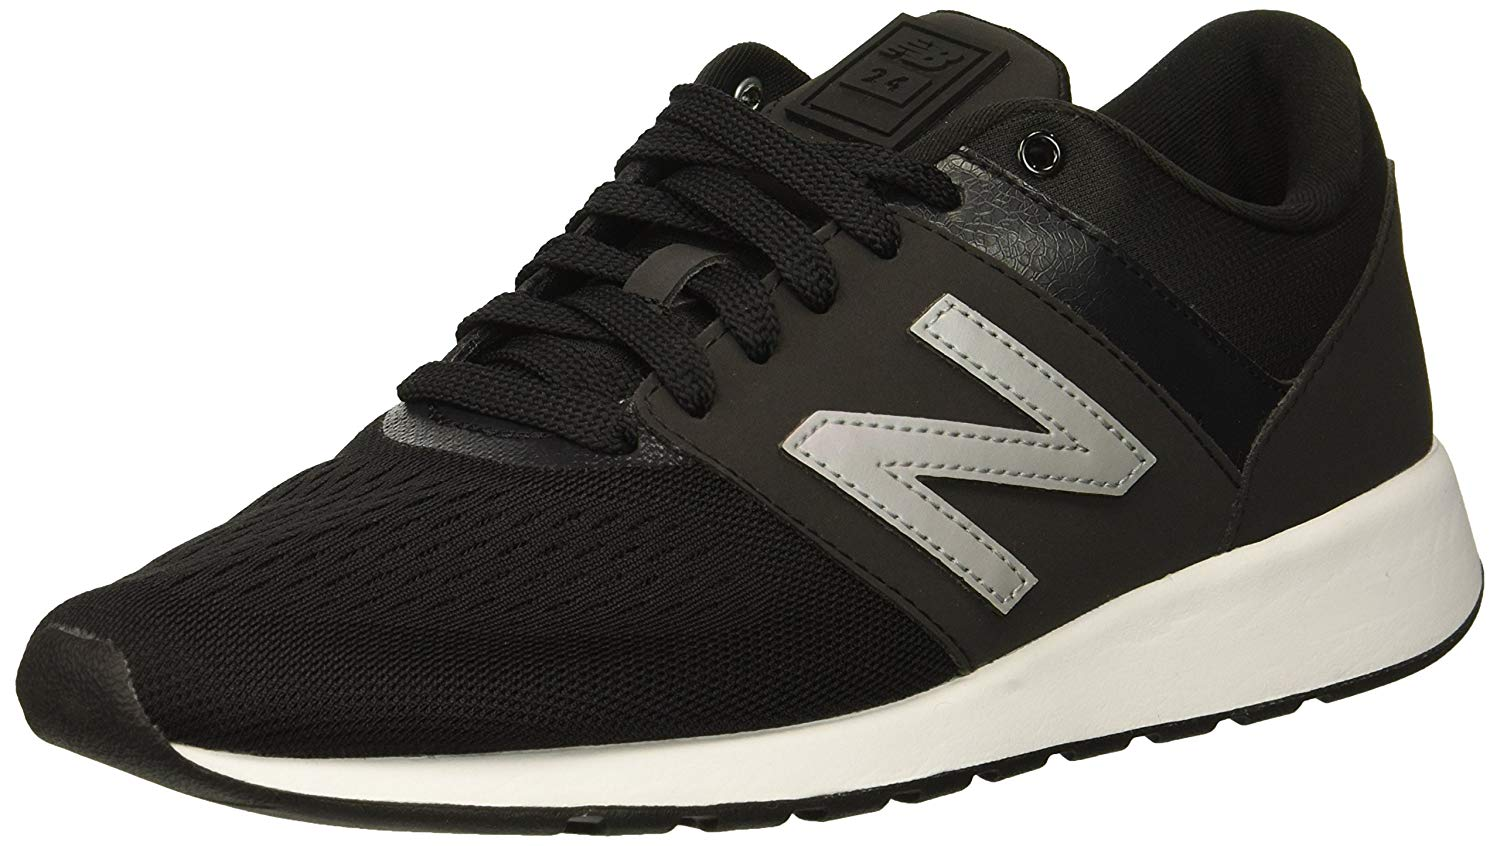 799504a59d7a New Balance Womens wrl24tg running course Fabric Low